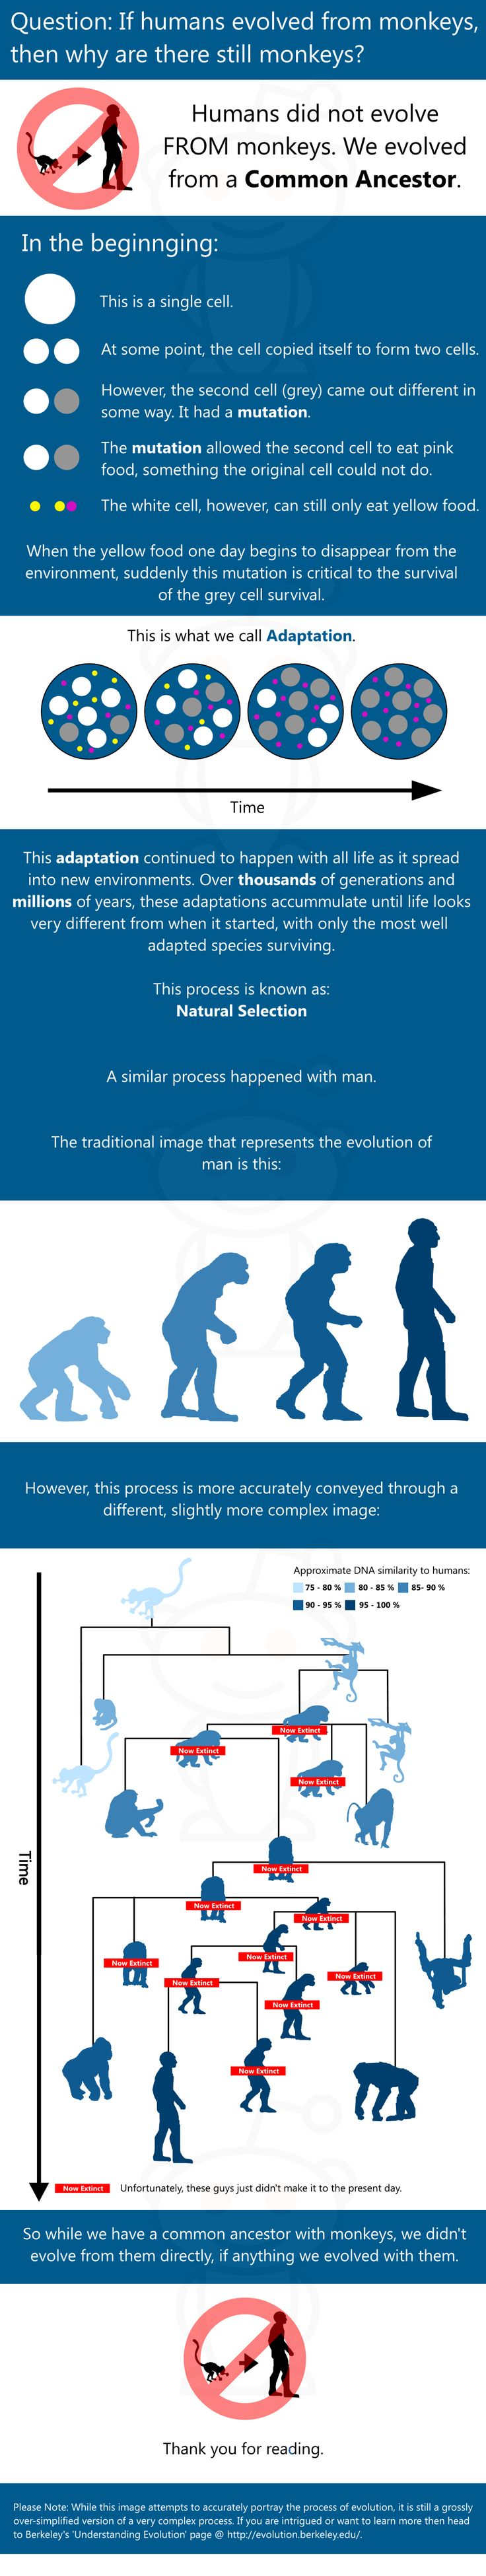 Question: If humans evolved from monkeys, then why are there still monkeys?